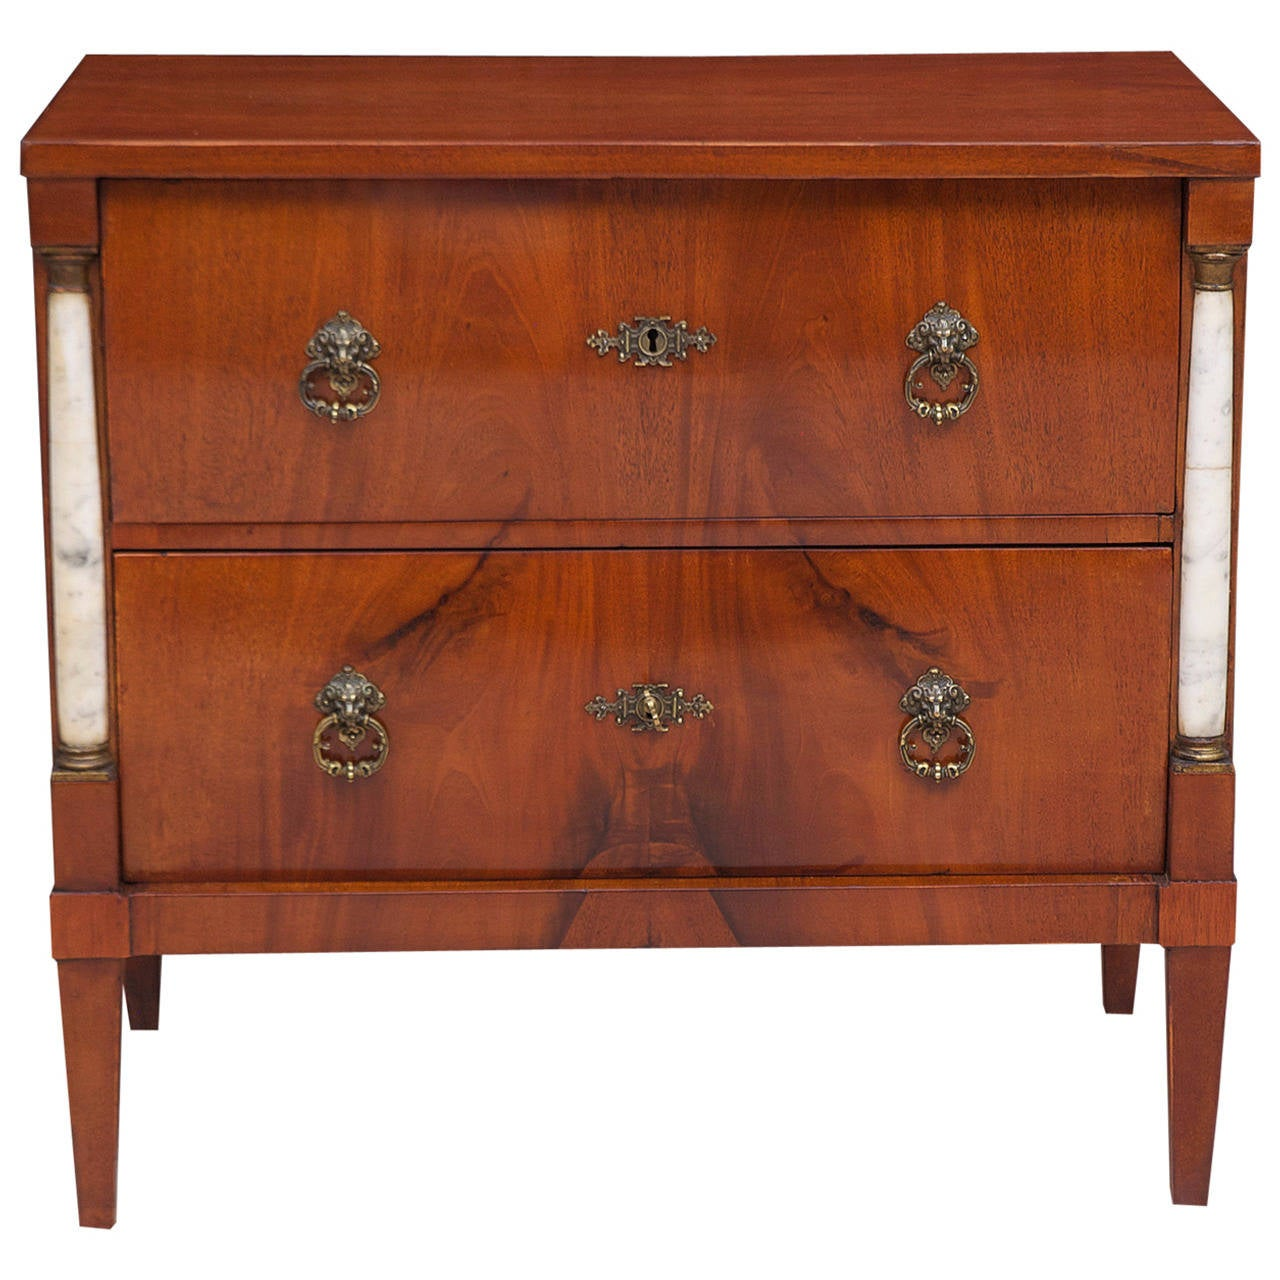 Small 2 Drawer Empire Chest of Drawers in Mahogany with Marble Columns, c. 1790